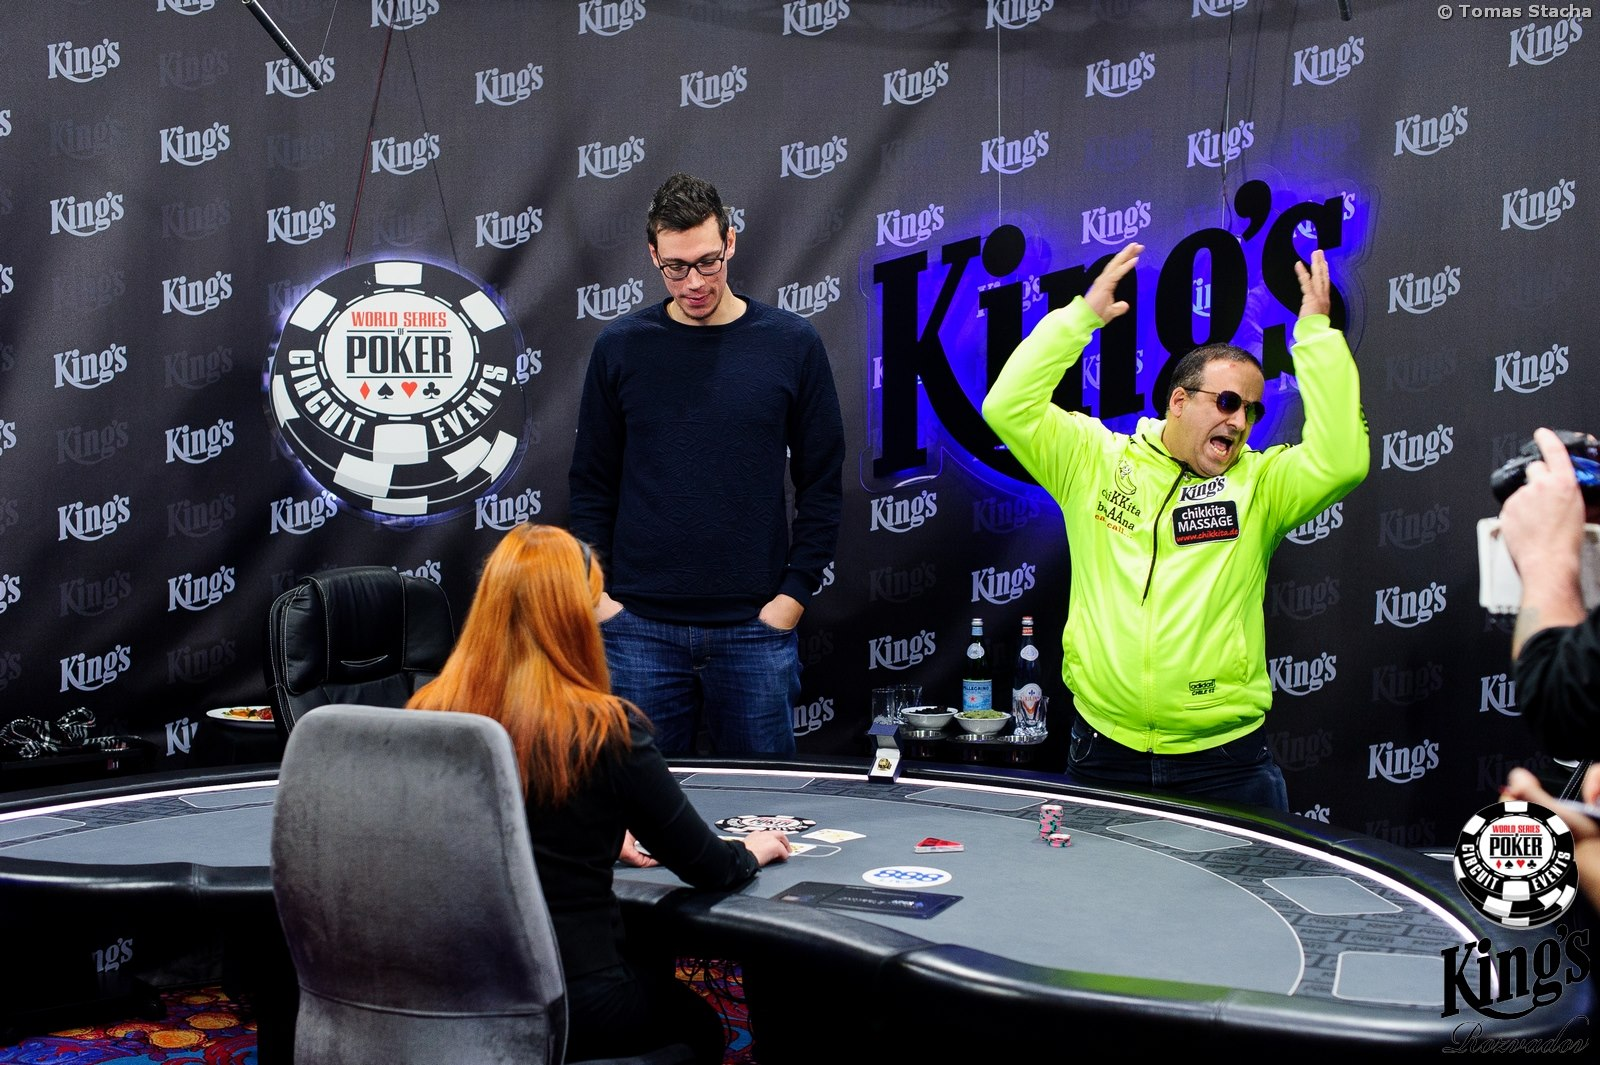 Ivan Banic Wins the 2016 WSOP Circuit Rozvadov Main Event for €232,241 101